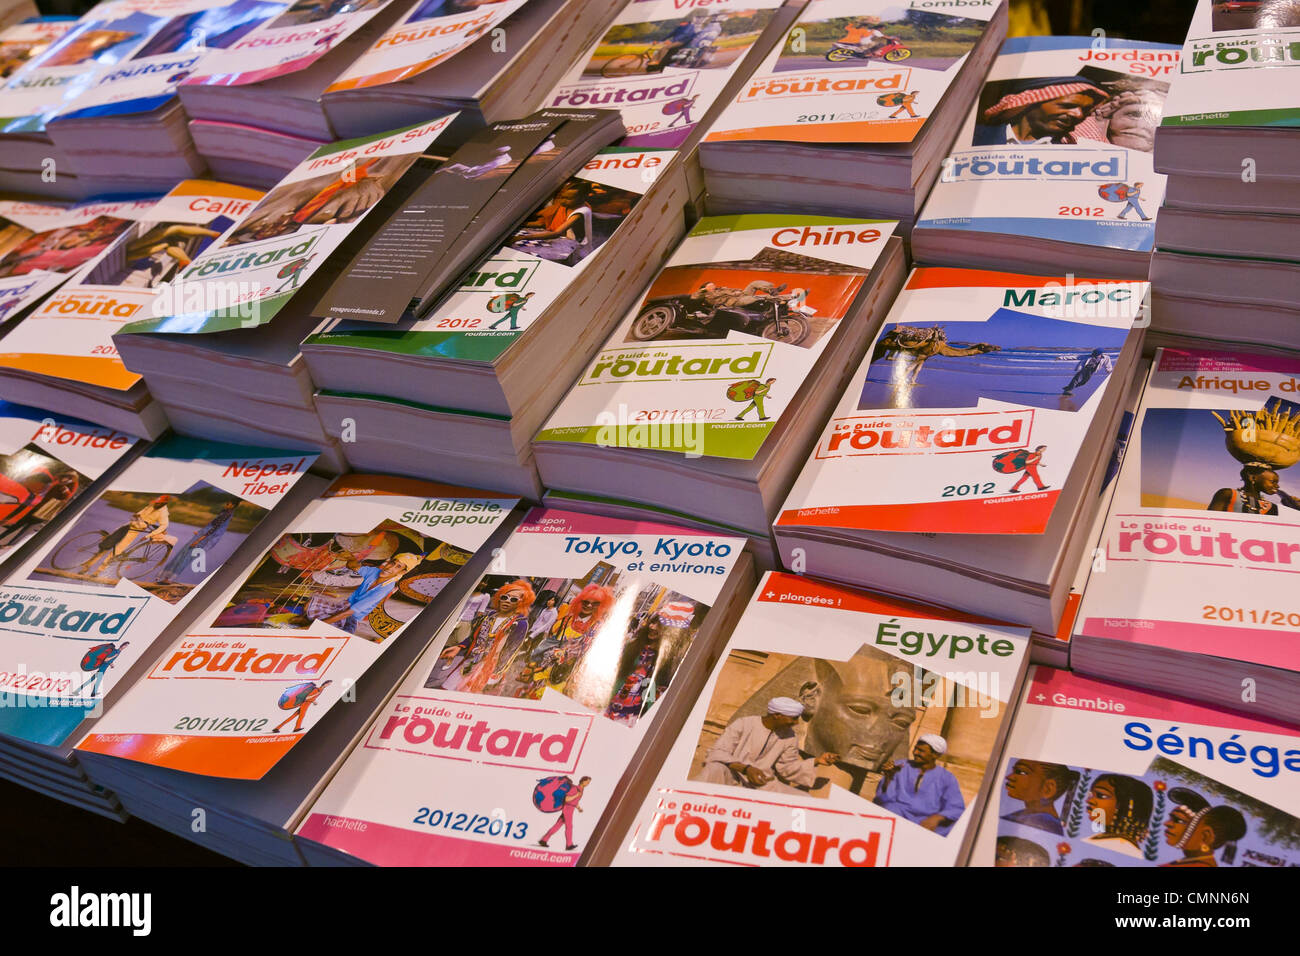 Hachette travel guide books booth International Tourism Show 2012 Paris - Stock Image